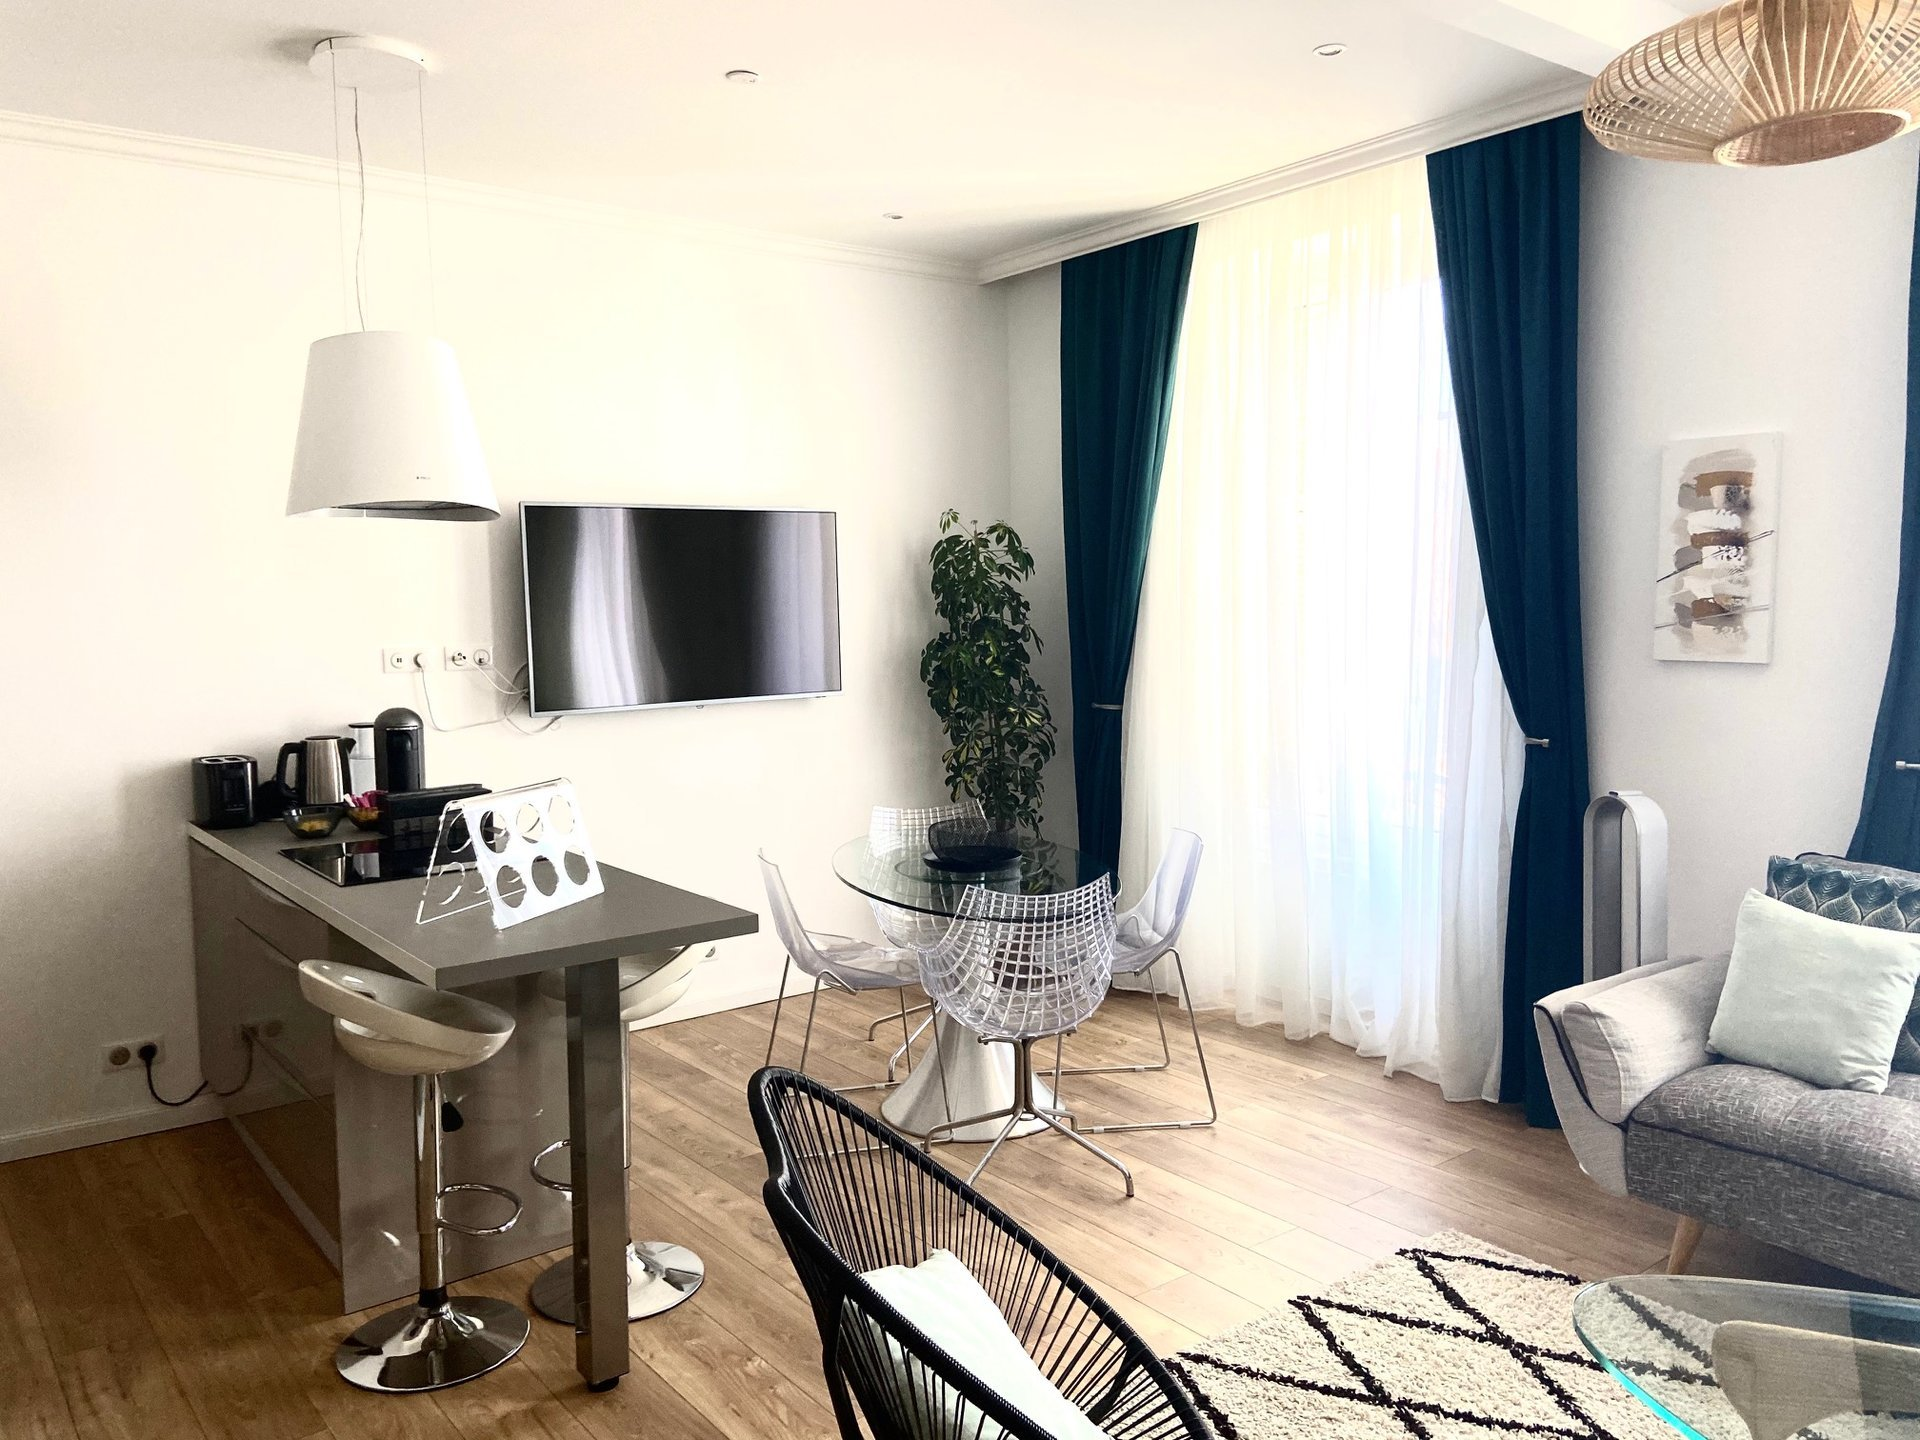 2 BEDROOMS APARTMENT PLACE GARIBALDI